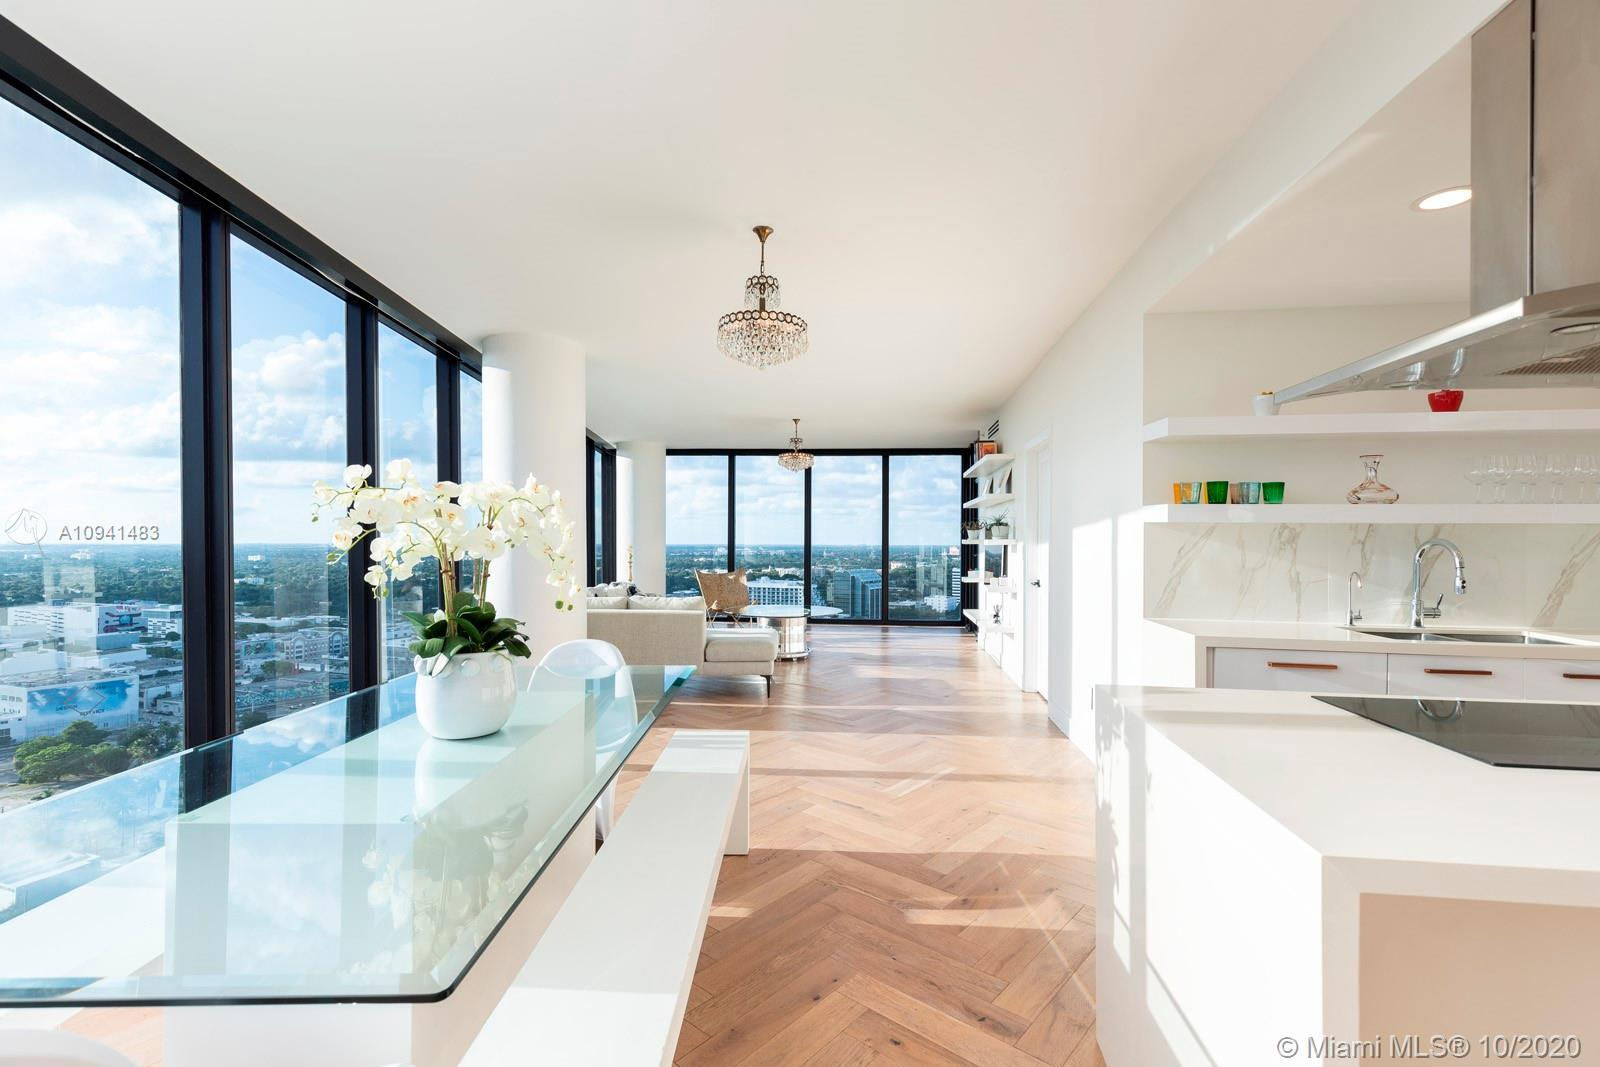 Lavish corner residence in the sky sets the new standard of luxury in Edgewater. Completely renovate